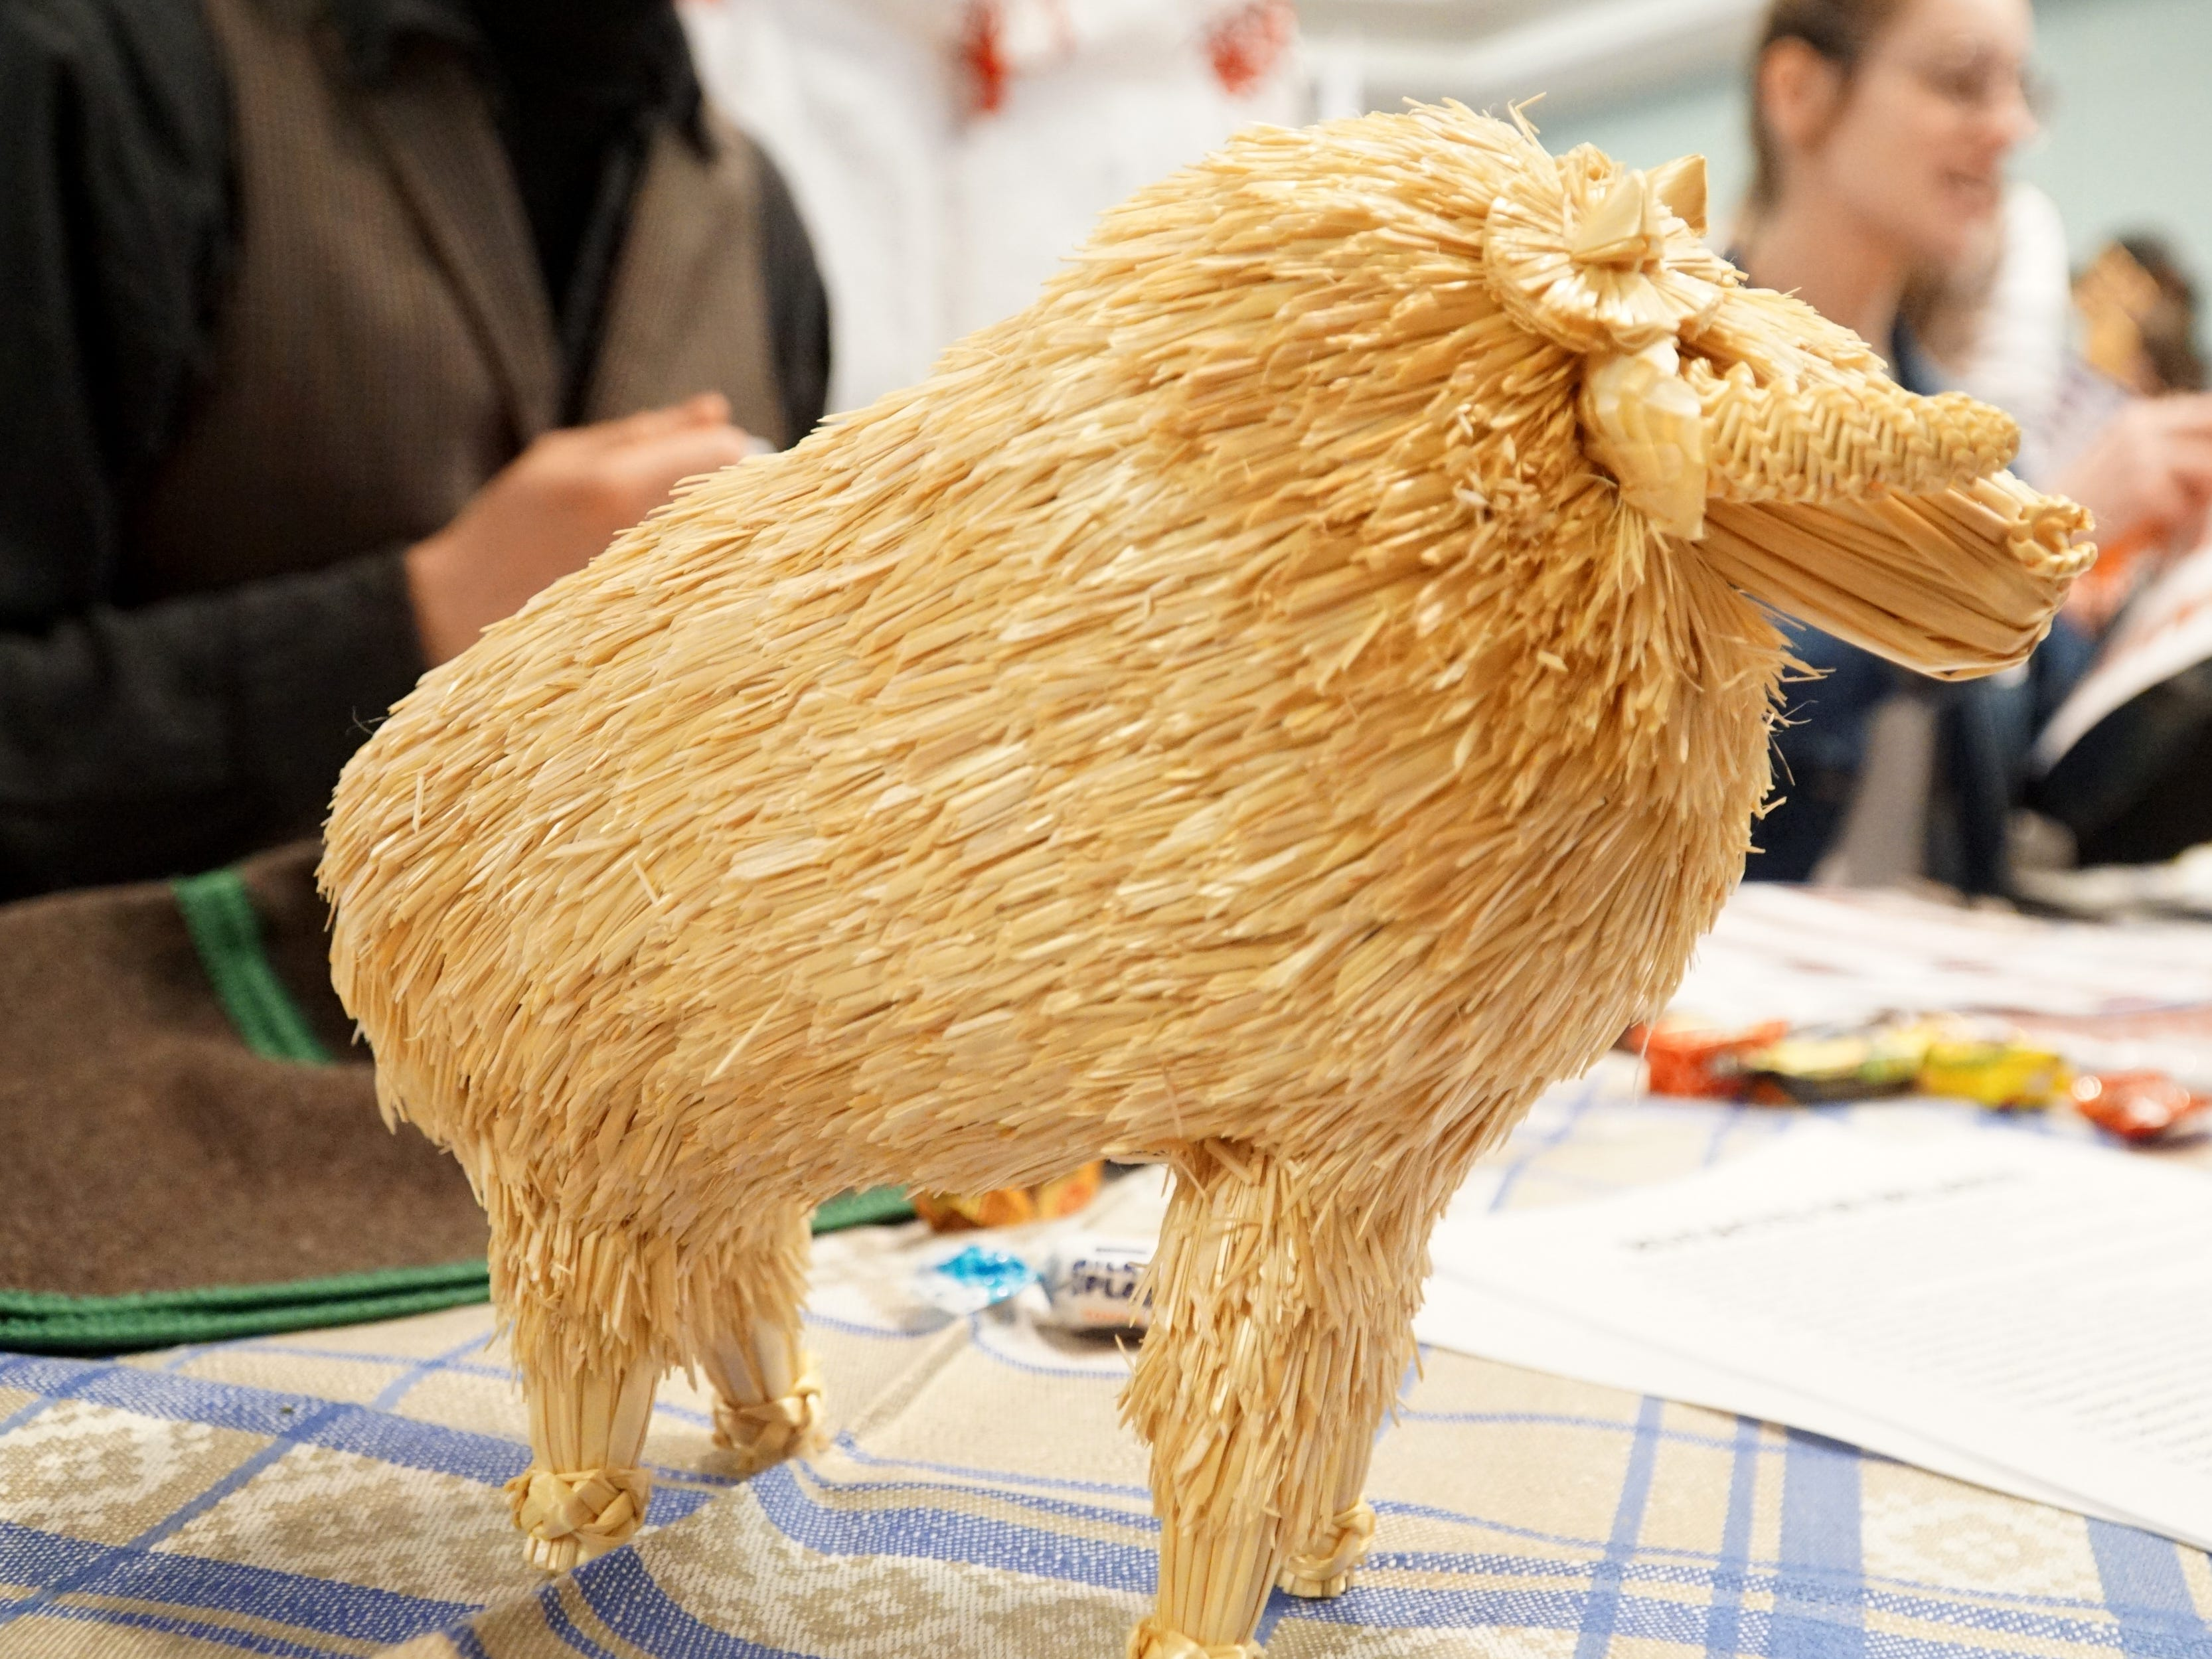 A ram crafted out of straw is displayed at the Belarus booth at Schoolcraft's Multicultural Fair.